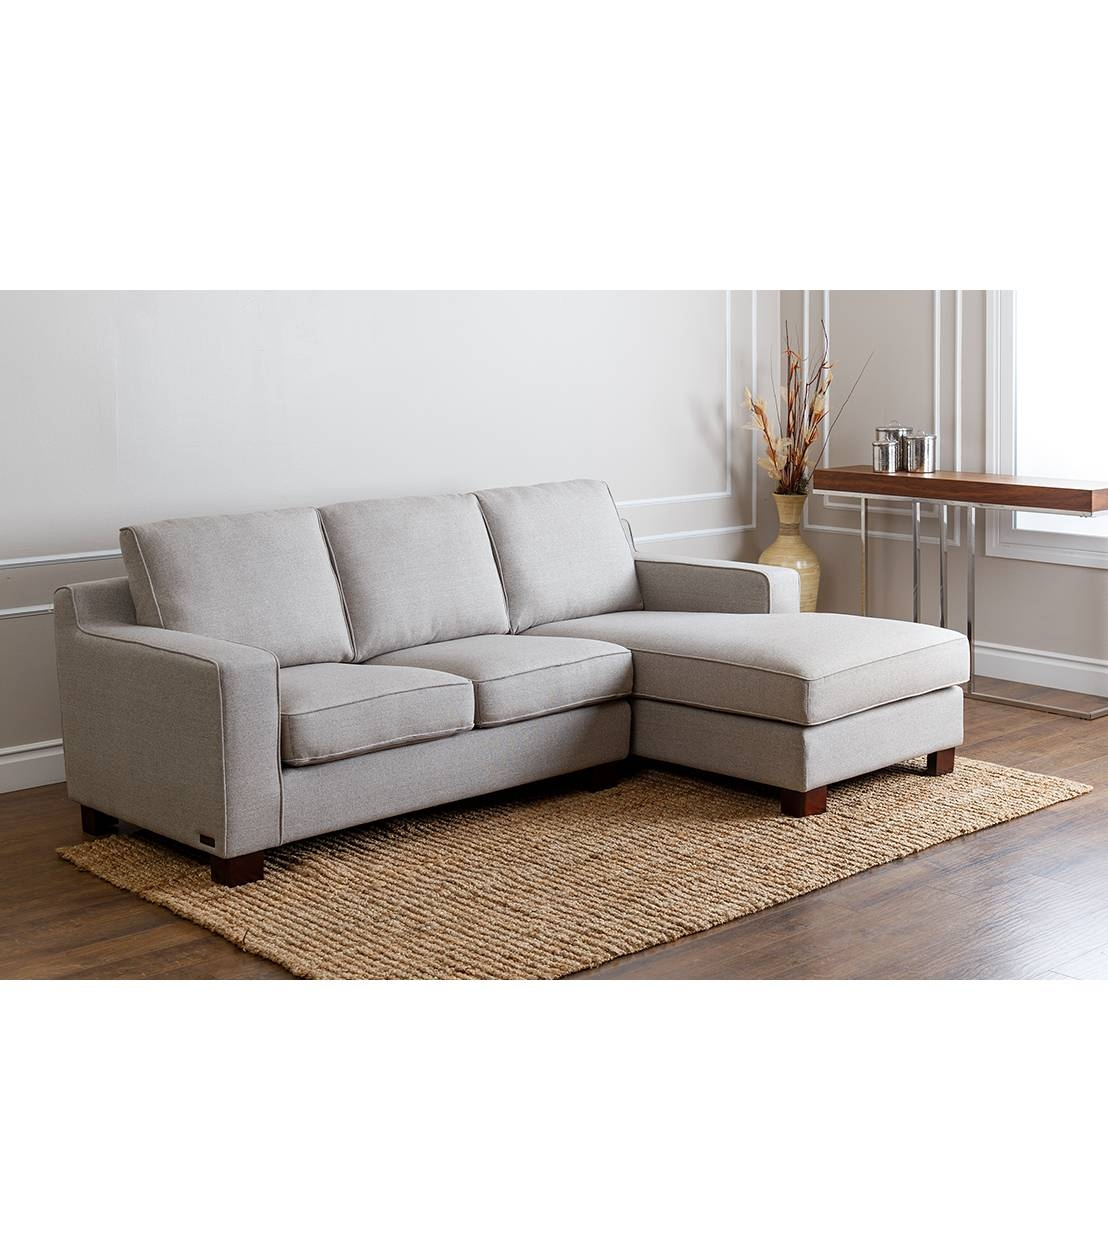 Sectionals intended for Abbyson Living Sectional Sofas (Image 12 of 15)